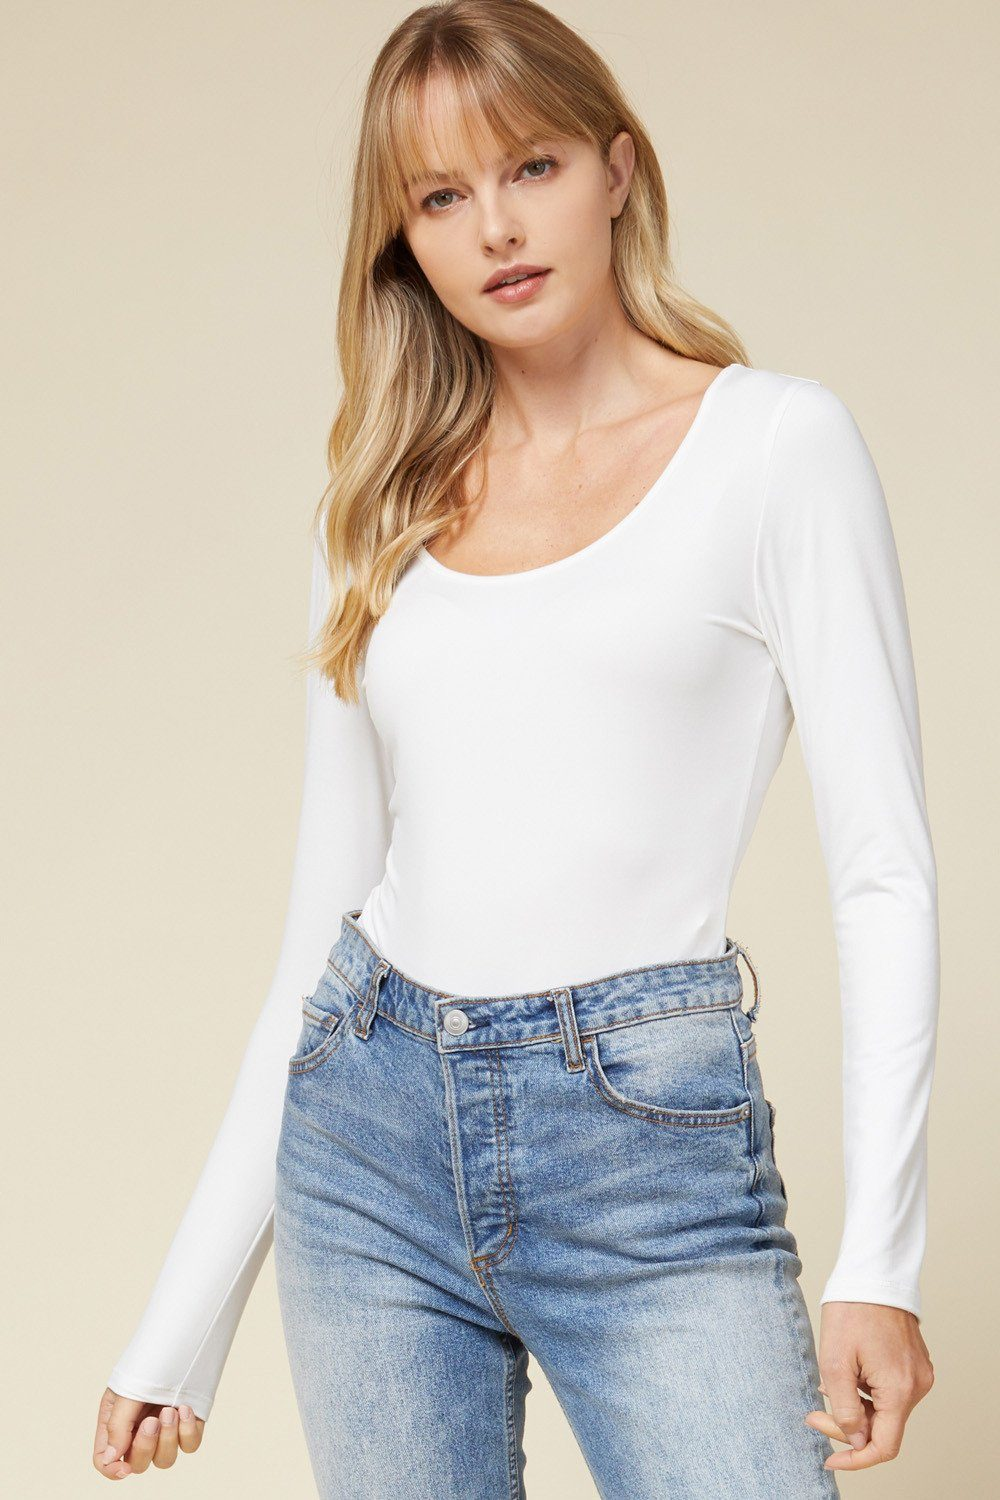 Everyday Basic Off White Bodysuit - Caroline Hill